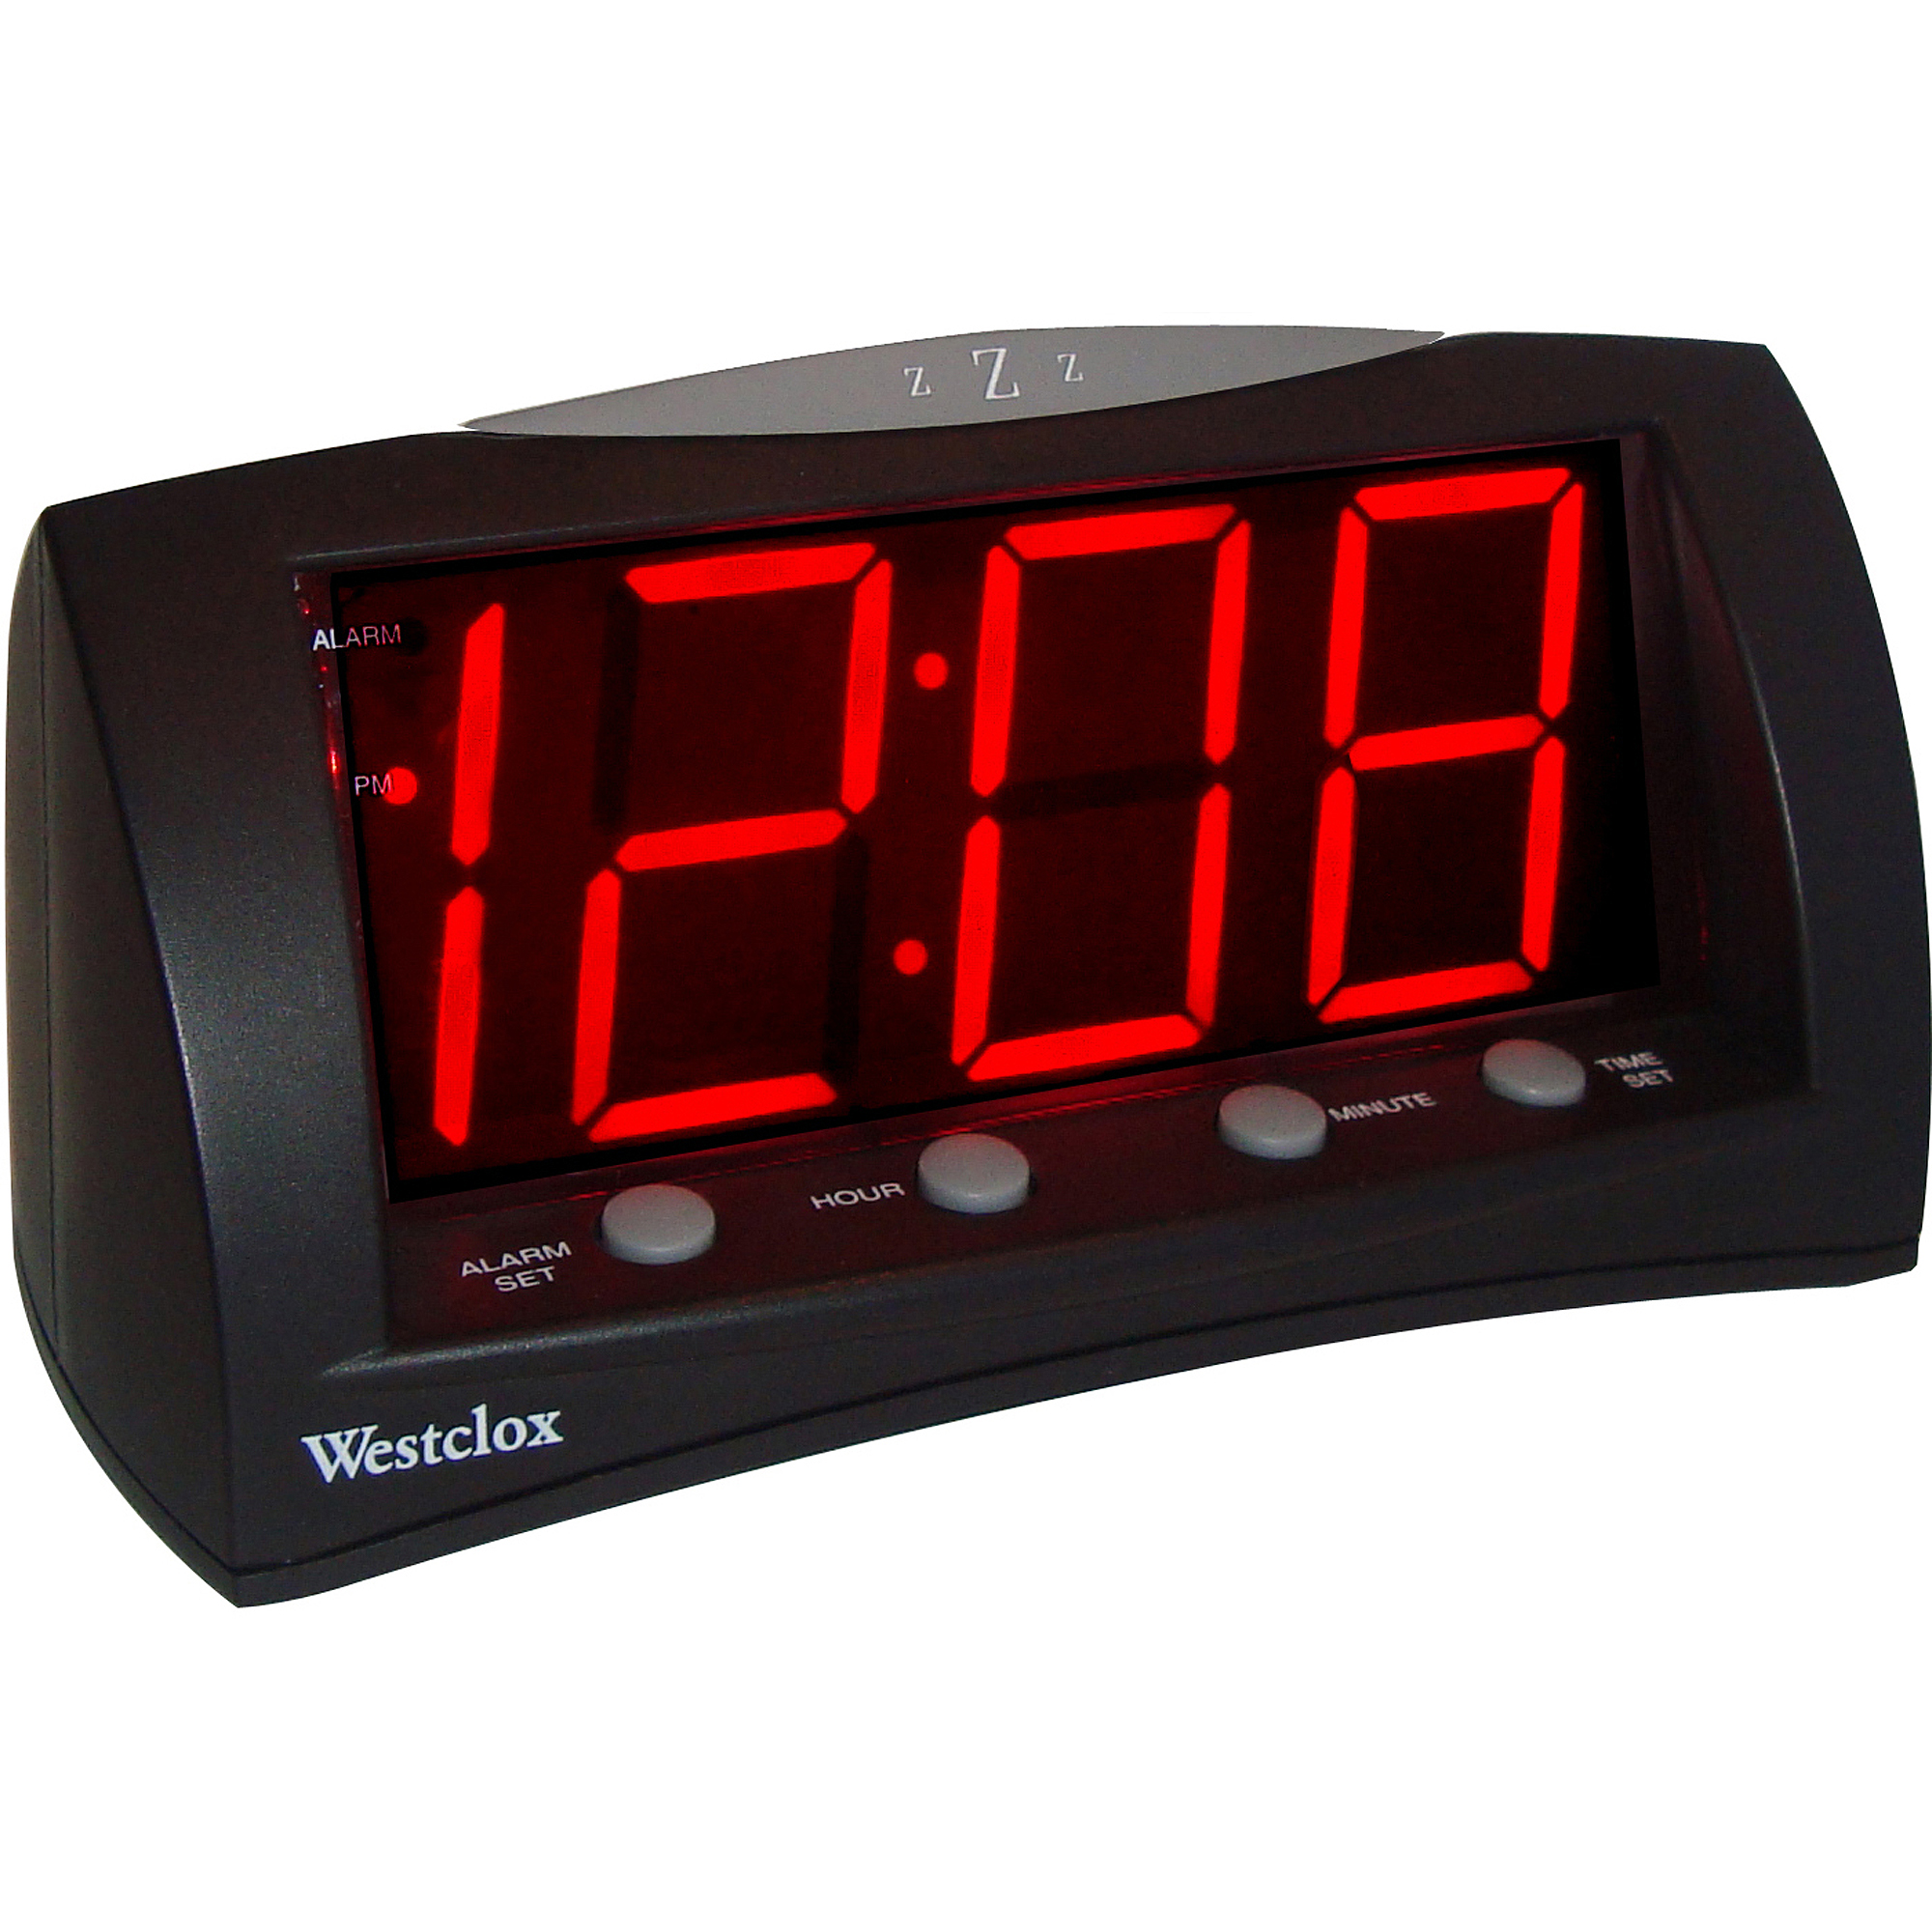 Emerson Smartset Radio Alarm Clock Led Cks1708 Beeper Circuit With